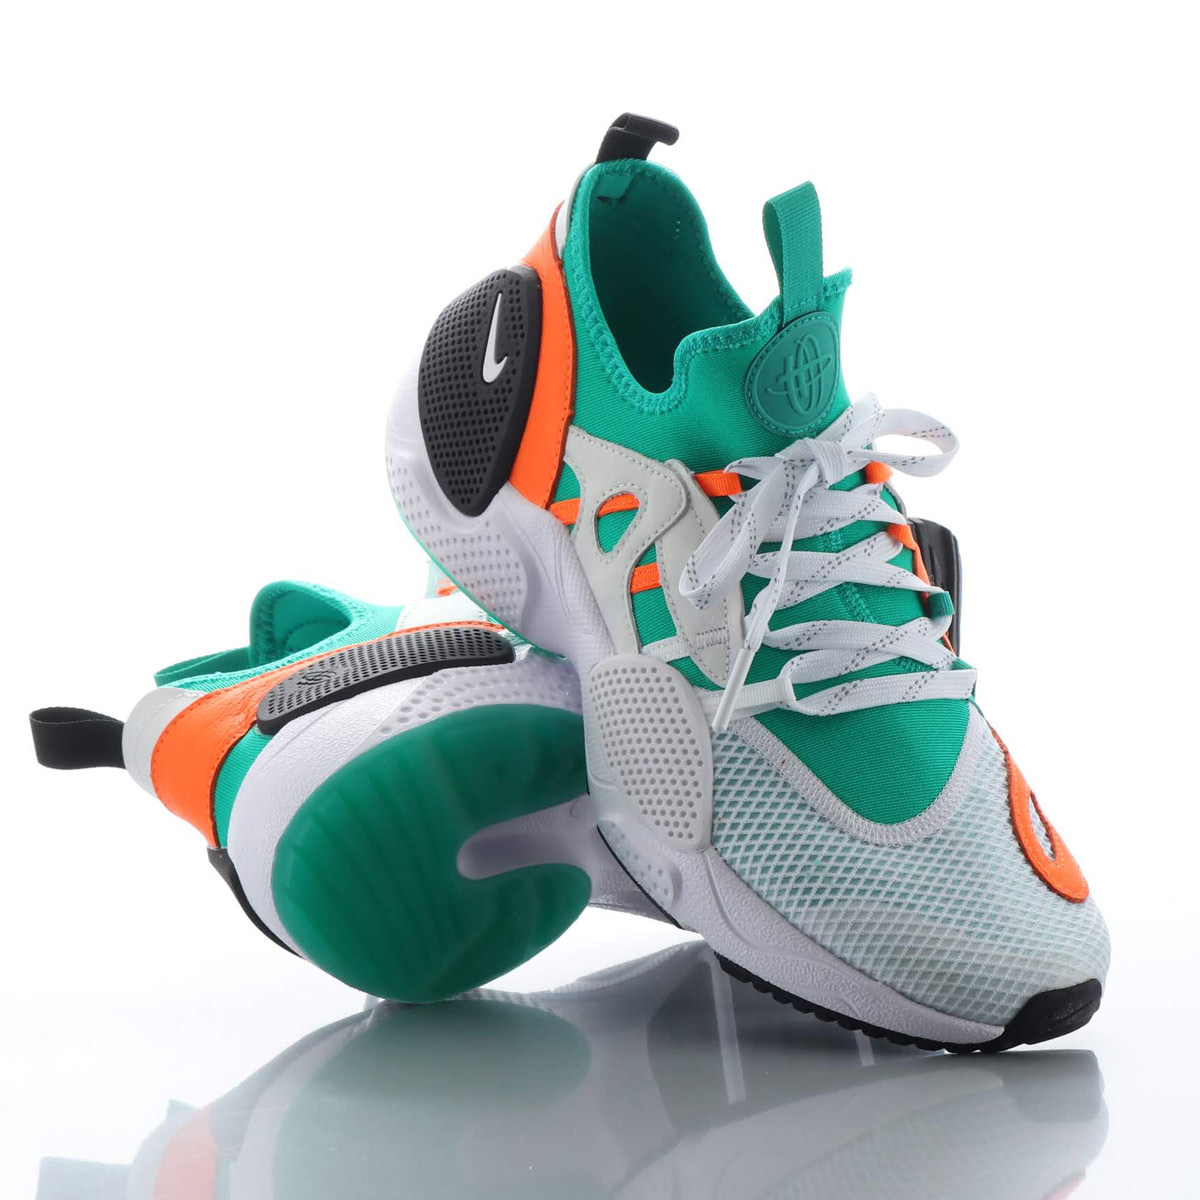 NIKE HUARACHE E.D.G.E. TXT QS (ナイキ ハラチ E.D.G.E. TXT QS) WHITE/WHITE-CLEAR EMERALD-TOTAL ORANGE【メンズ スニーカー】18HO-S